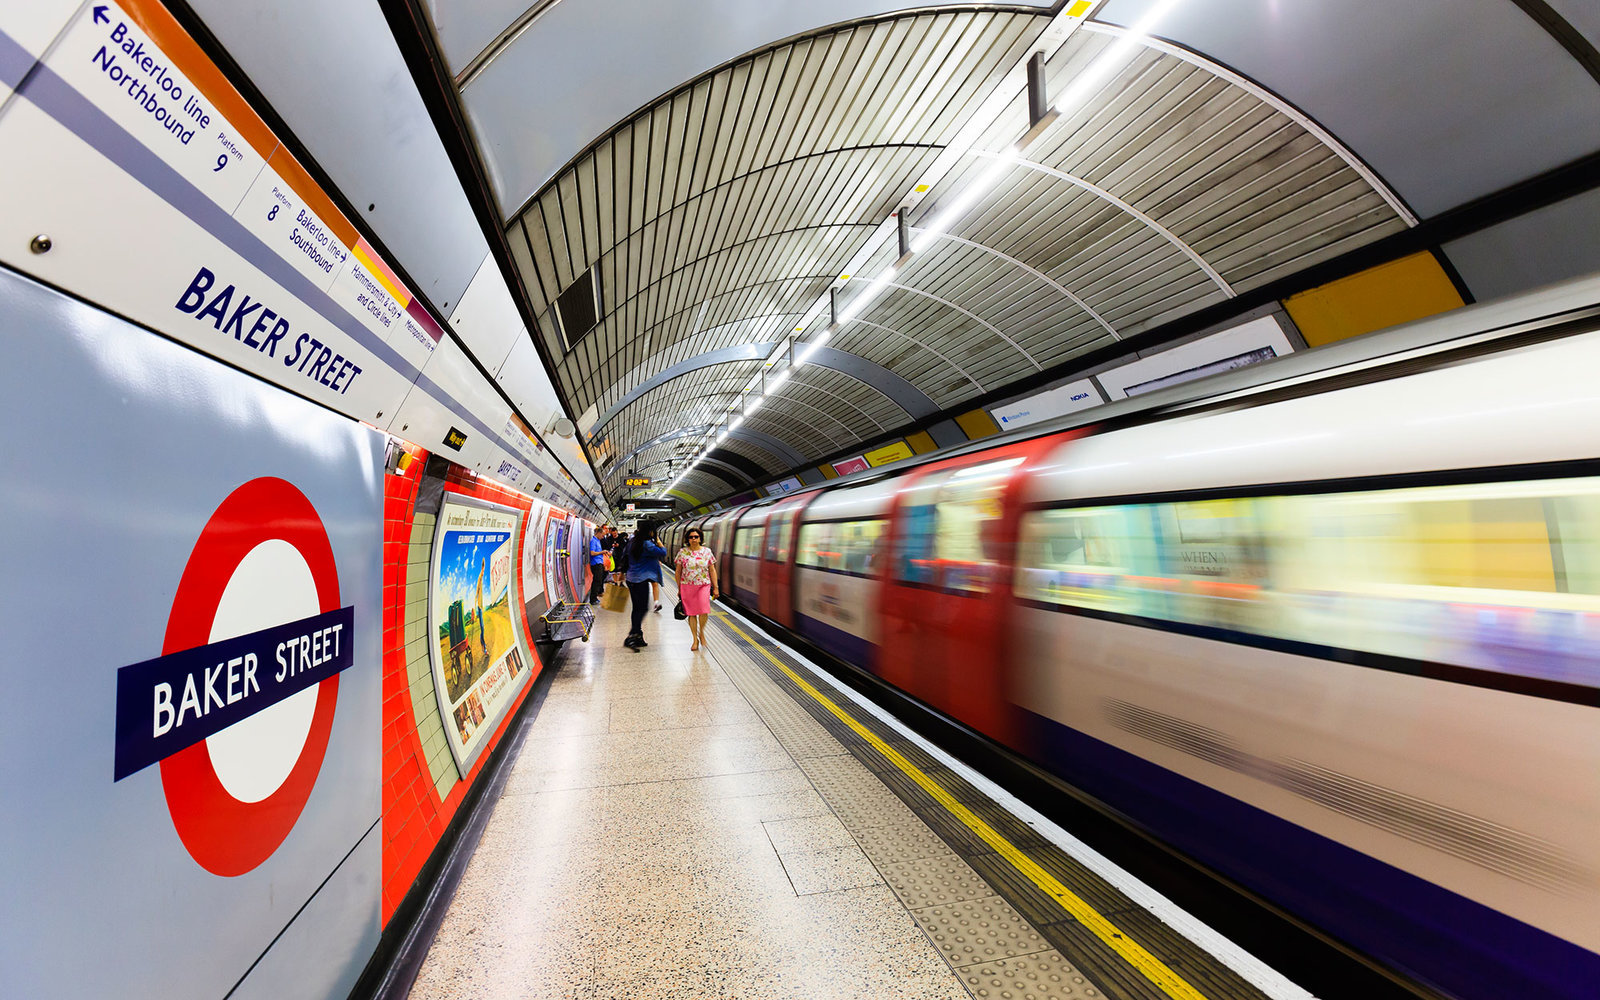 Baker Street Station on the London Underground